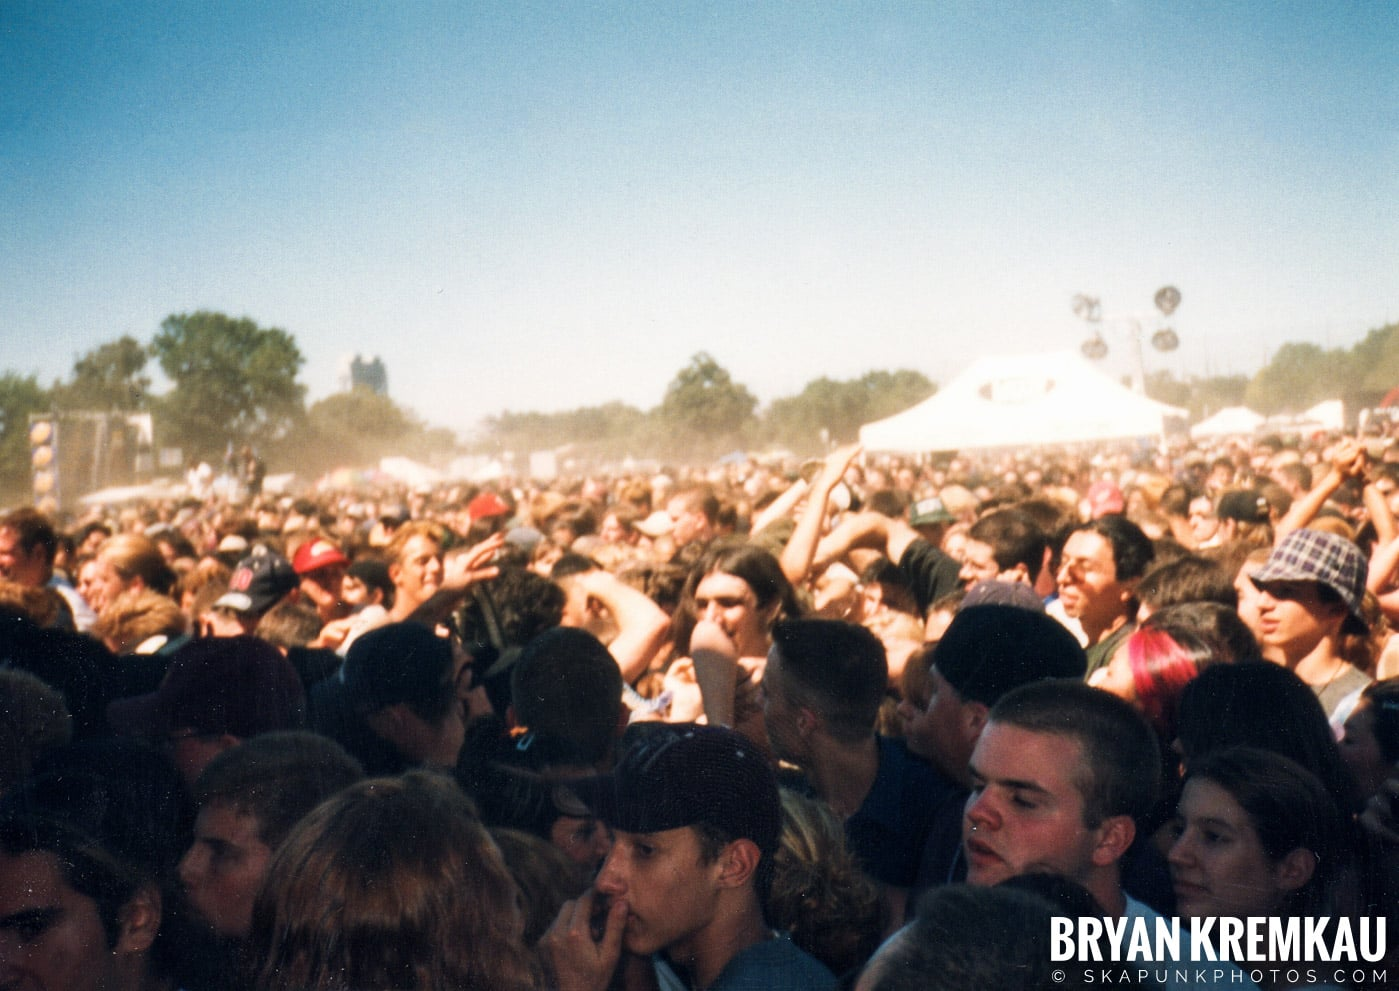 Crowd Shots @ Vans Warped Tour, Randall's Island, NYC - 8.1.98 (3)